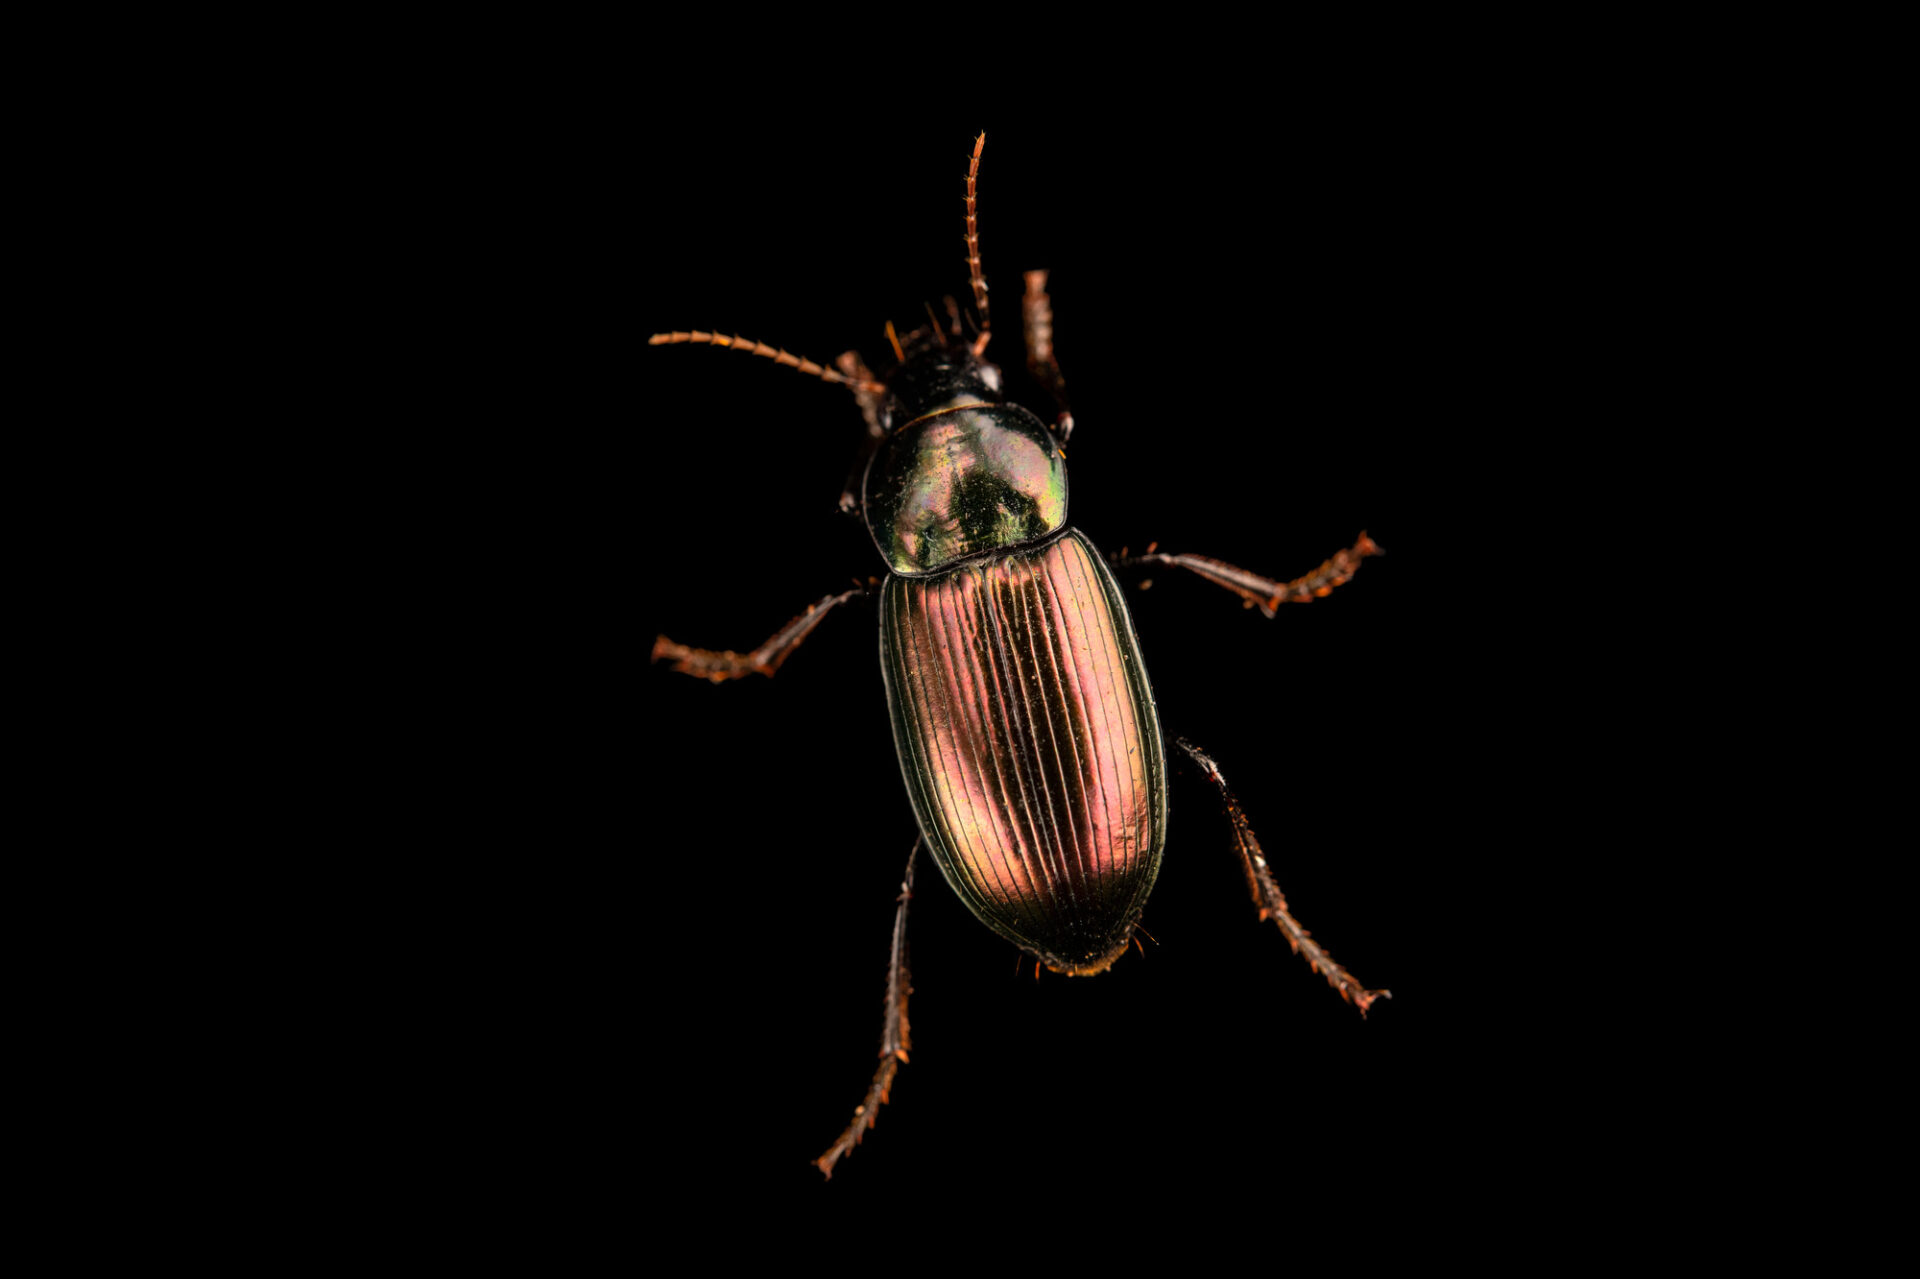 Photo: An unidentified ground beetle belonging to the Carabidae family at Museo d'Orbigny.